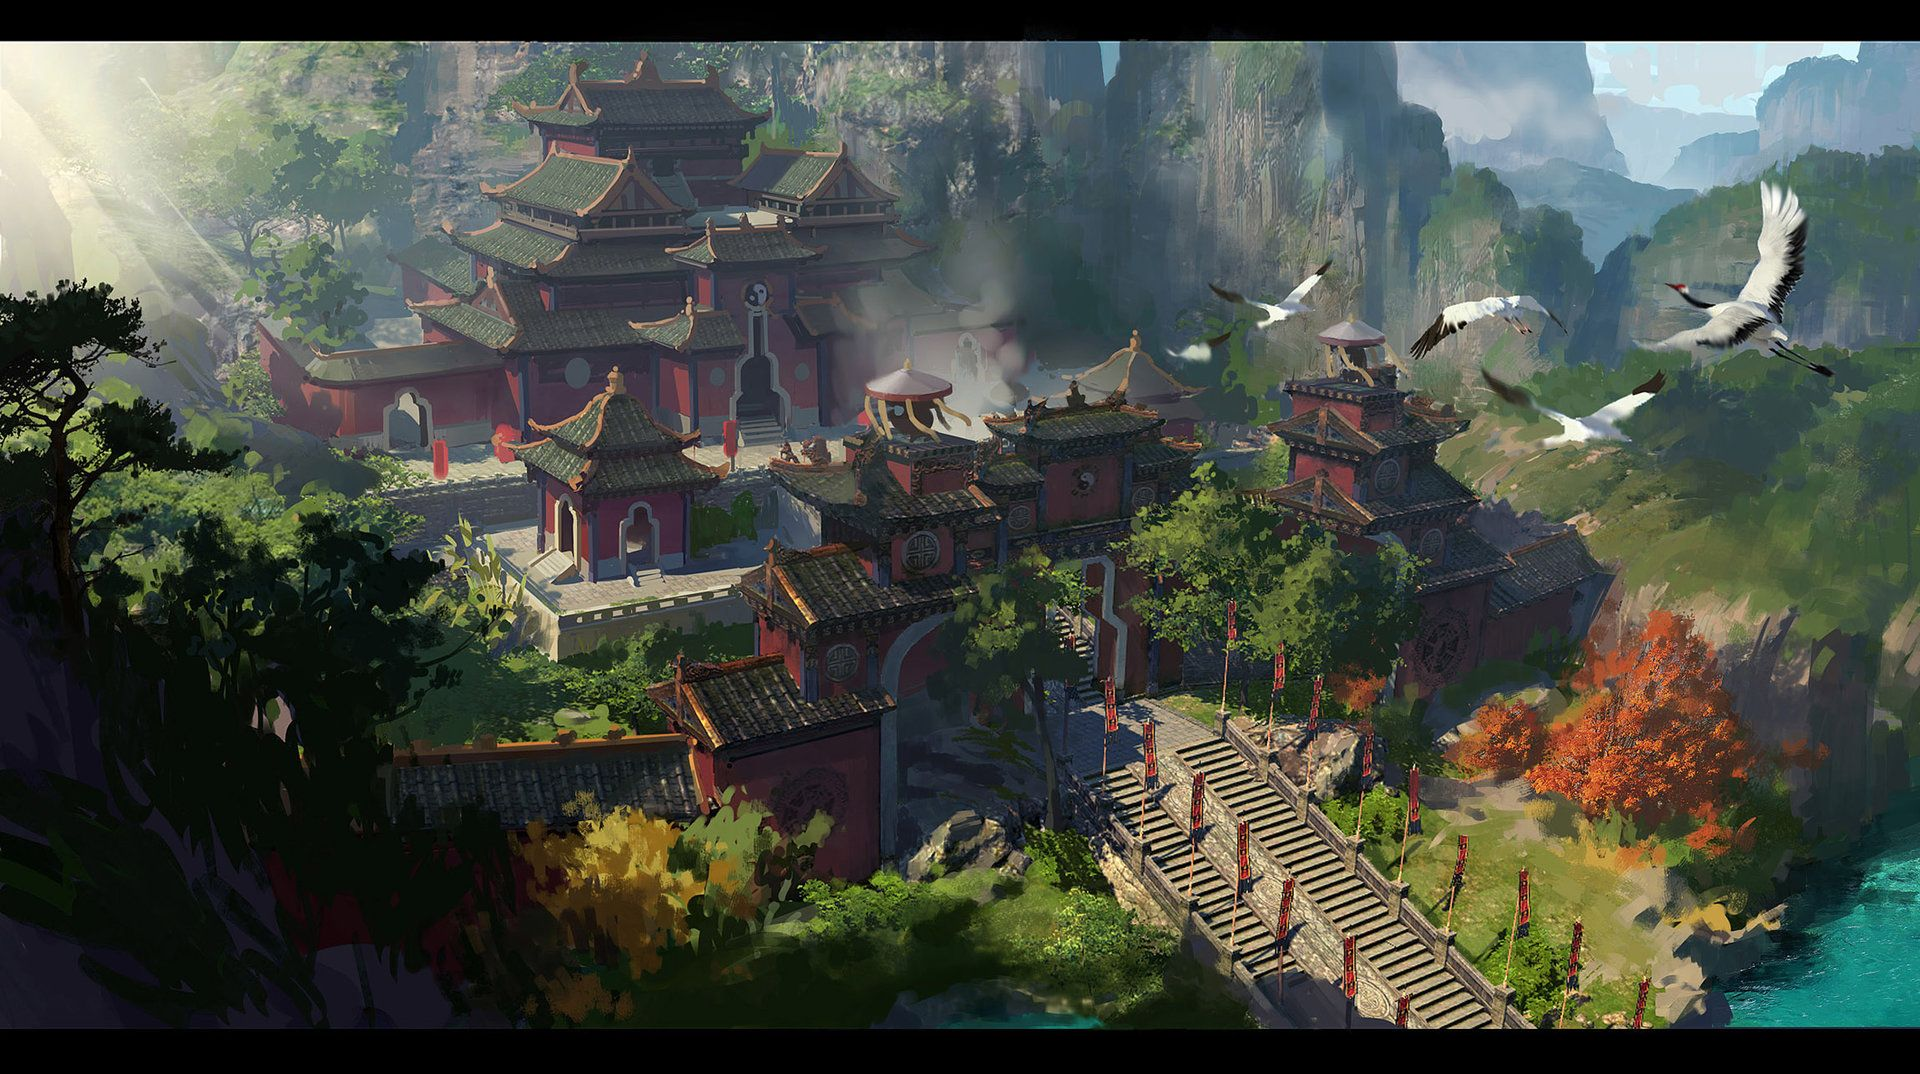 ArtStation - China Taoist temple2, Dawnpu —Art vision studio